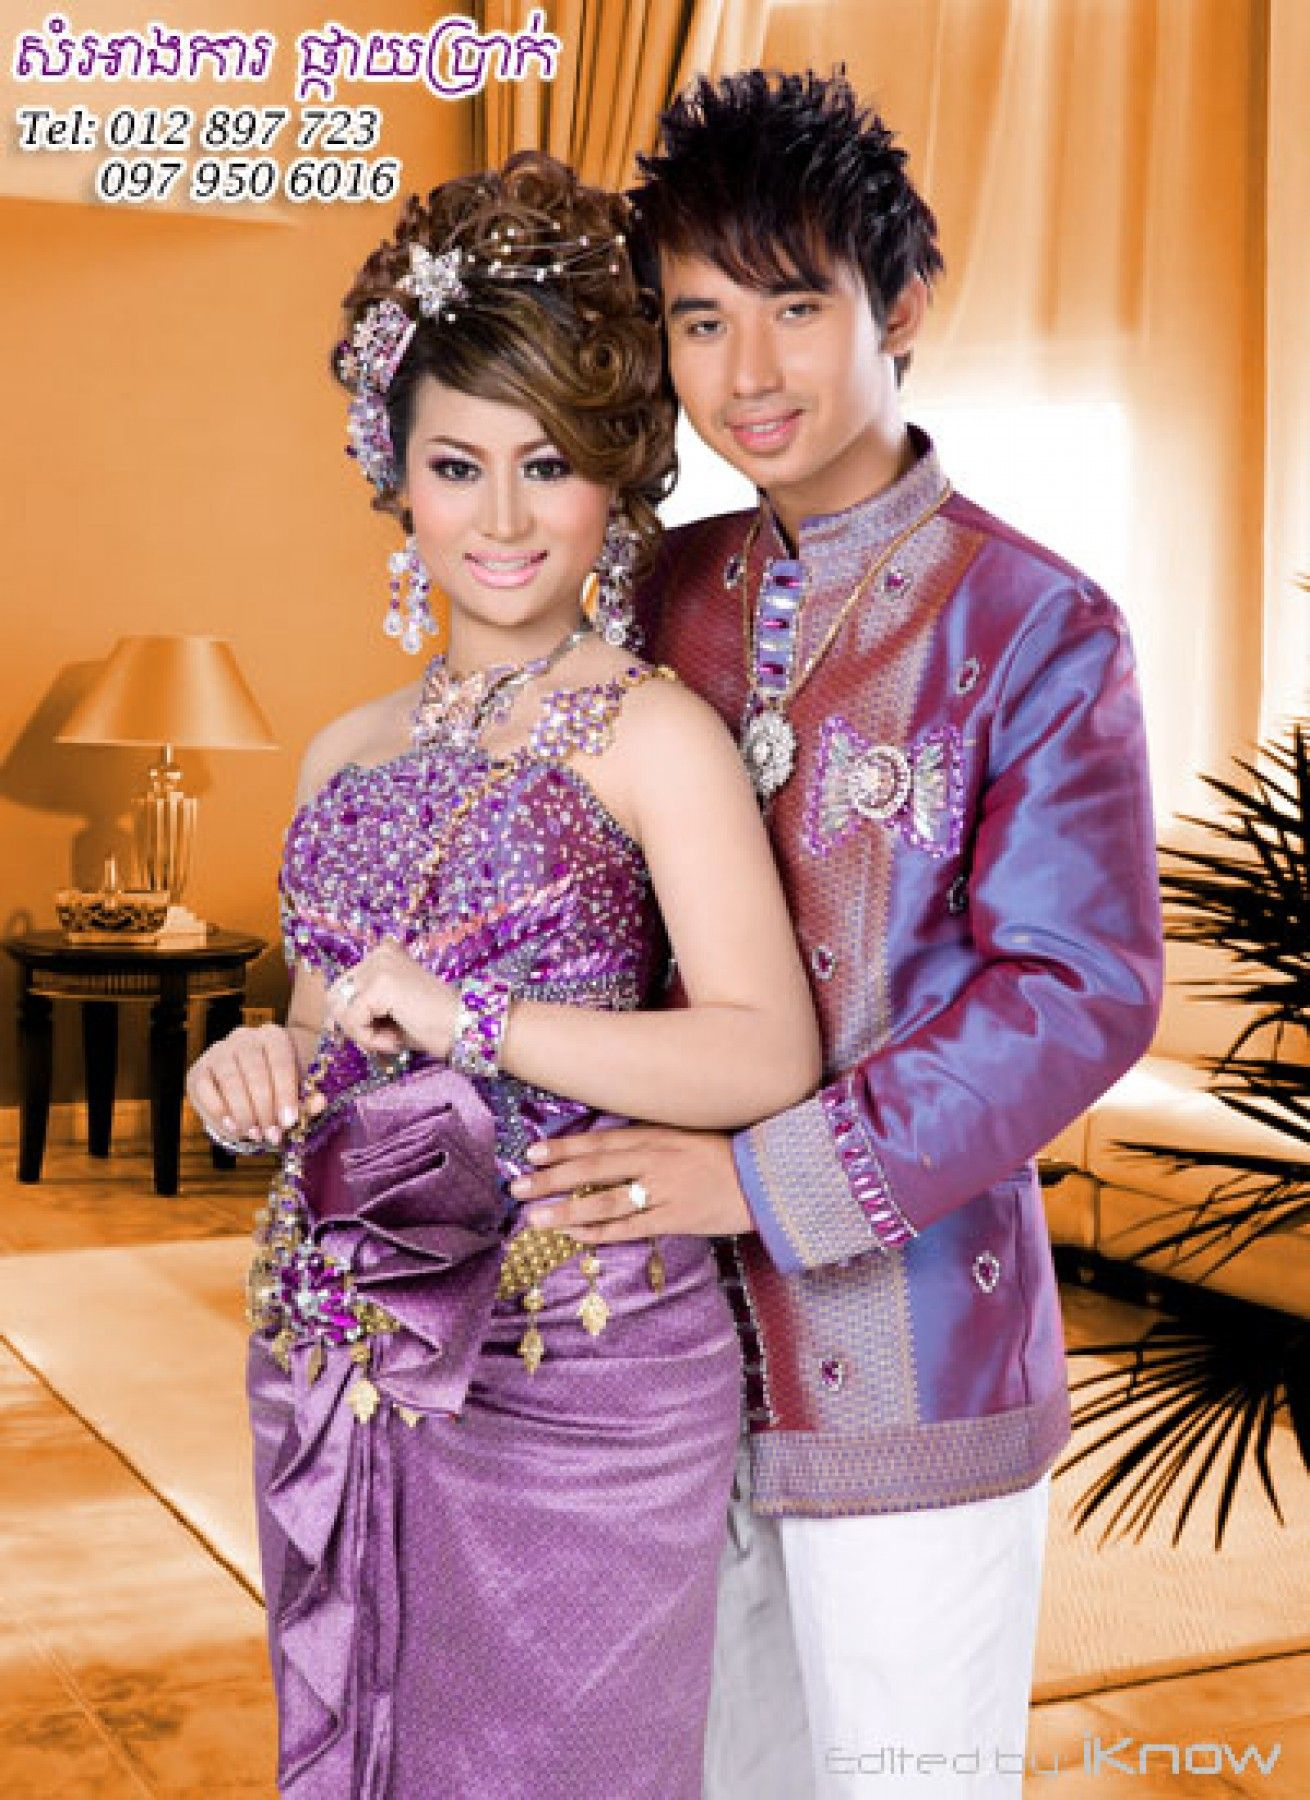 Cambodian wedding costume cambodian traditional wedding for Khmer dress for wedding party